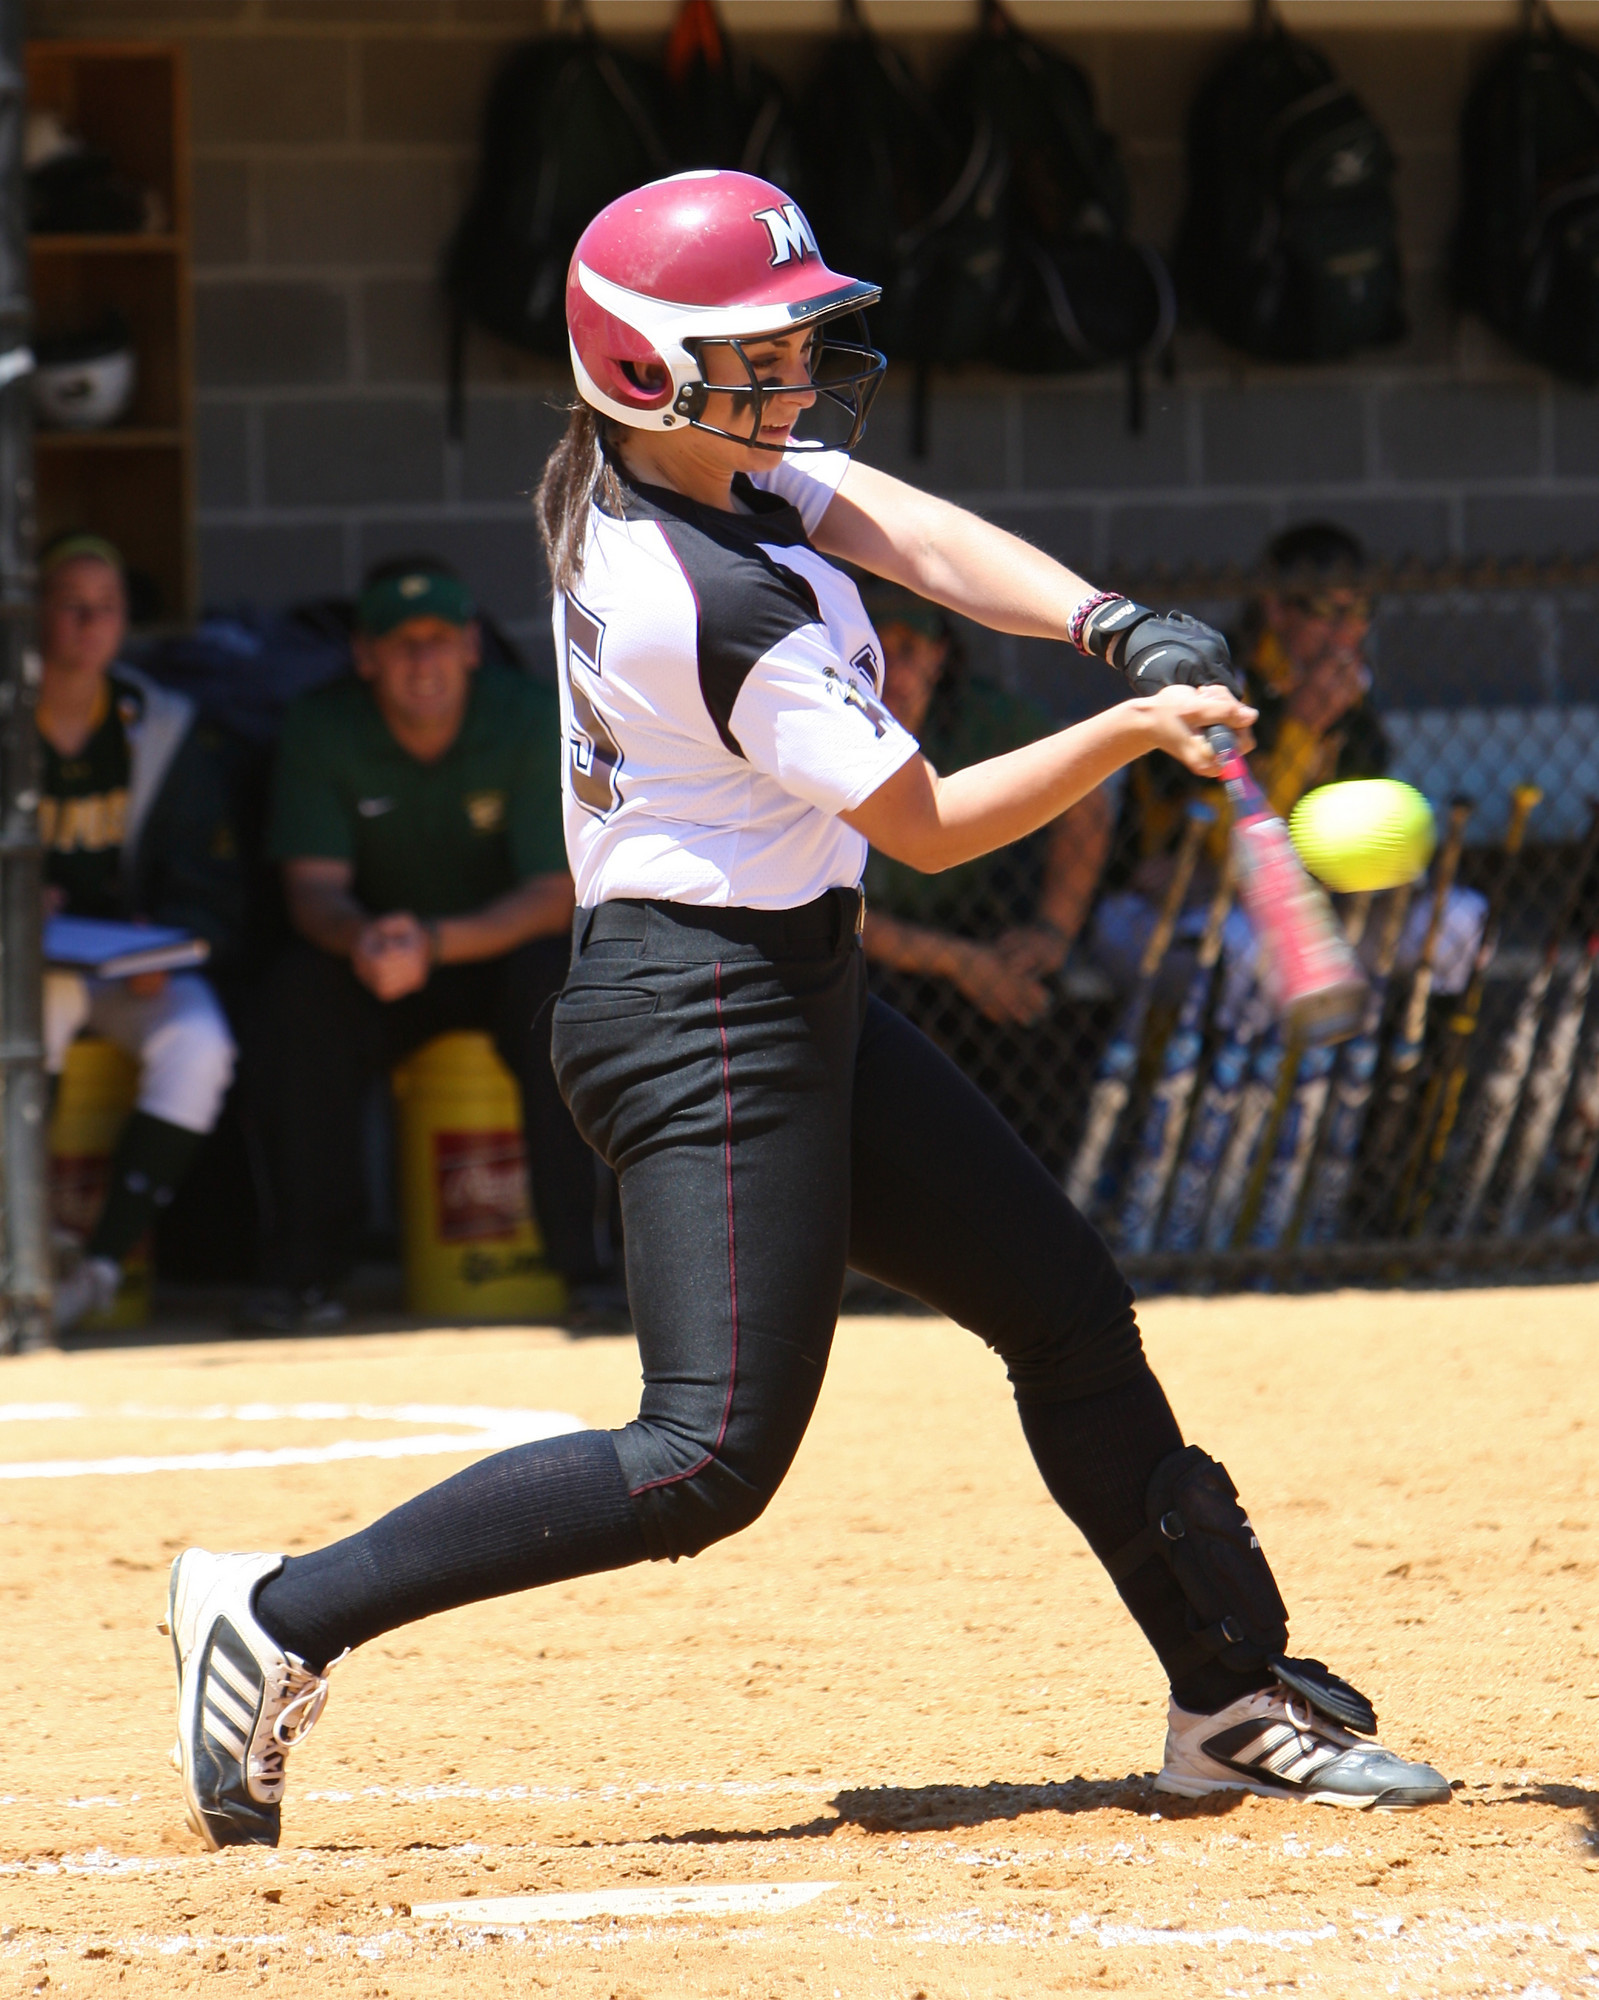 Victoria Gunnels, a Mepham High School graduate, hit the go-ahead home run for Molloy in its 4-1 East Coast Conference title win over LIU Post.